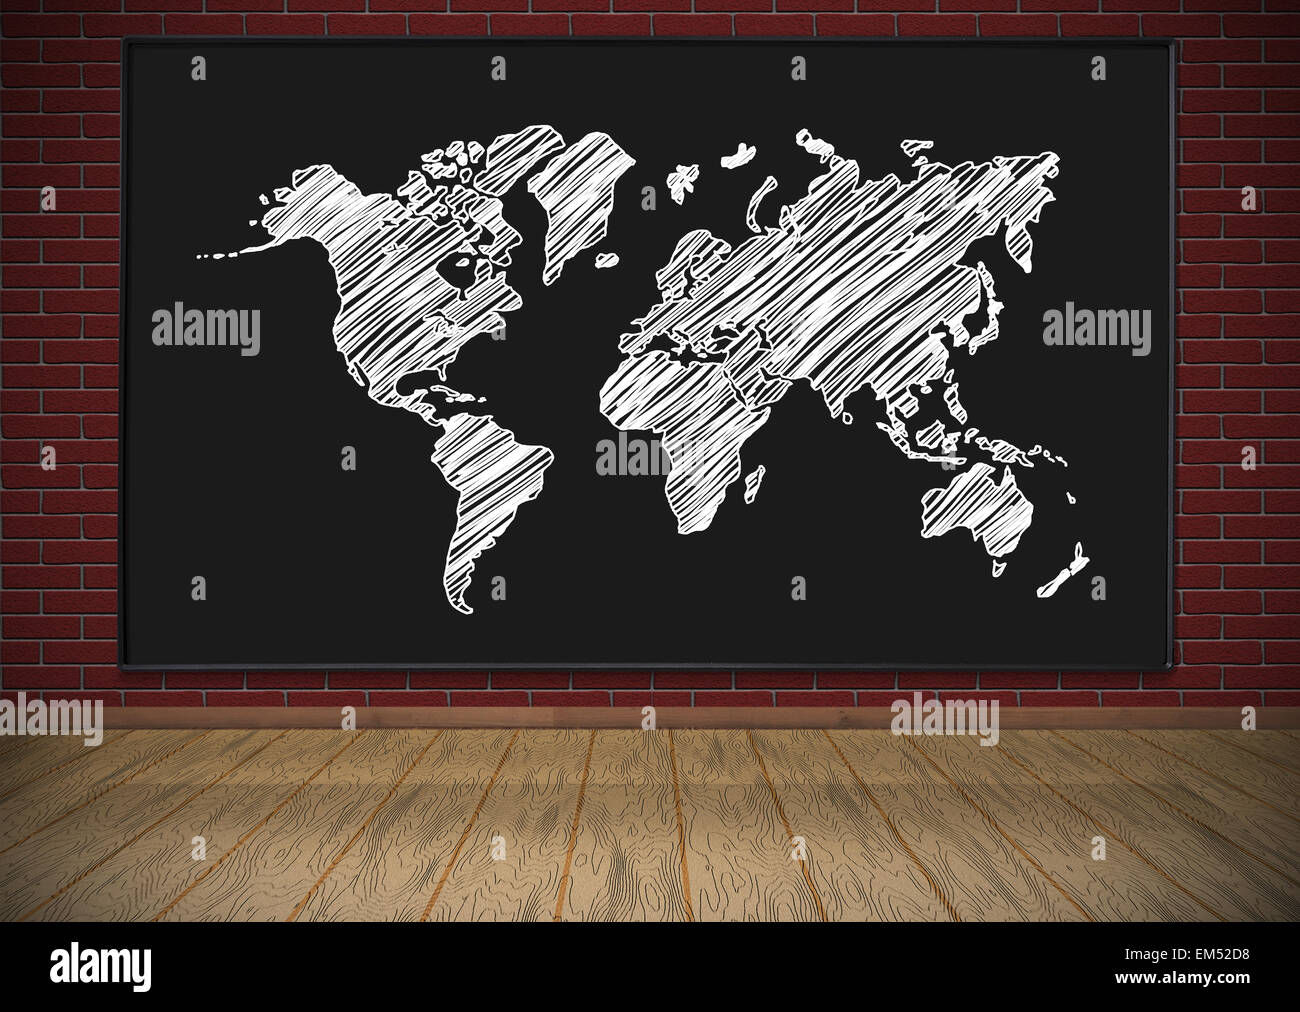 Blackboard with drawing world map hanging on red brick wall stock blackboard with drawing world map hanging on red brick wall gumiabroncs Choice Image